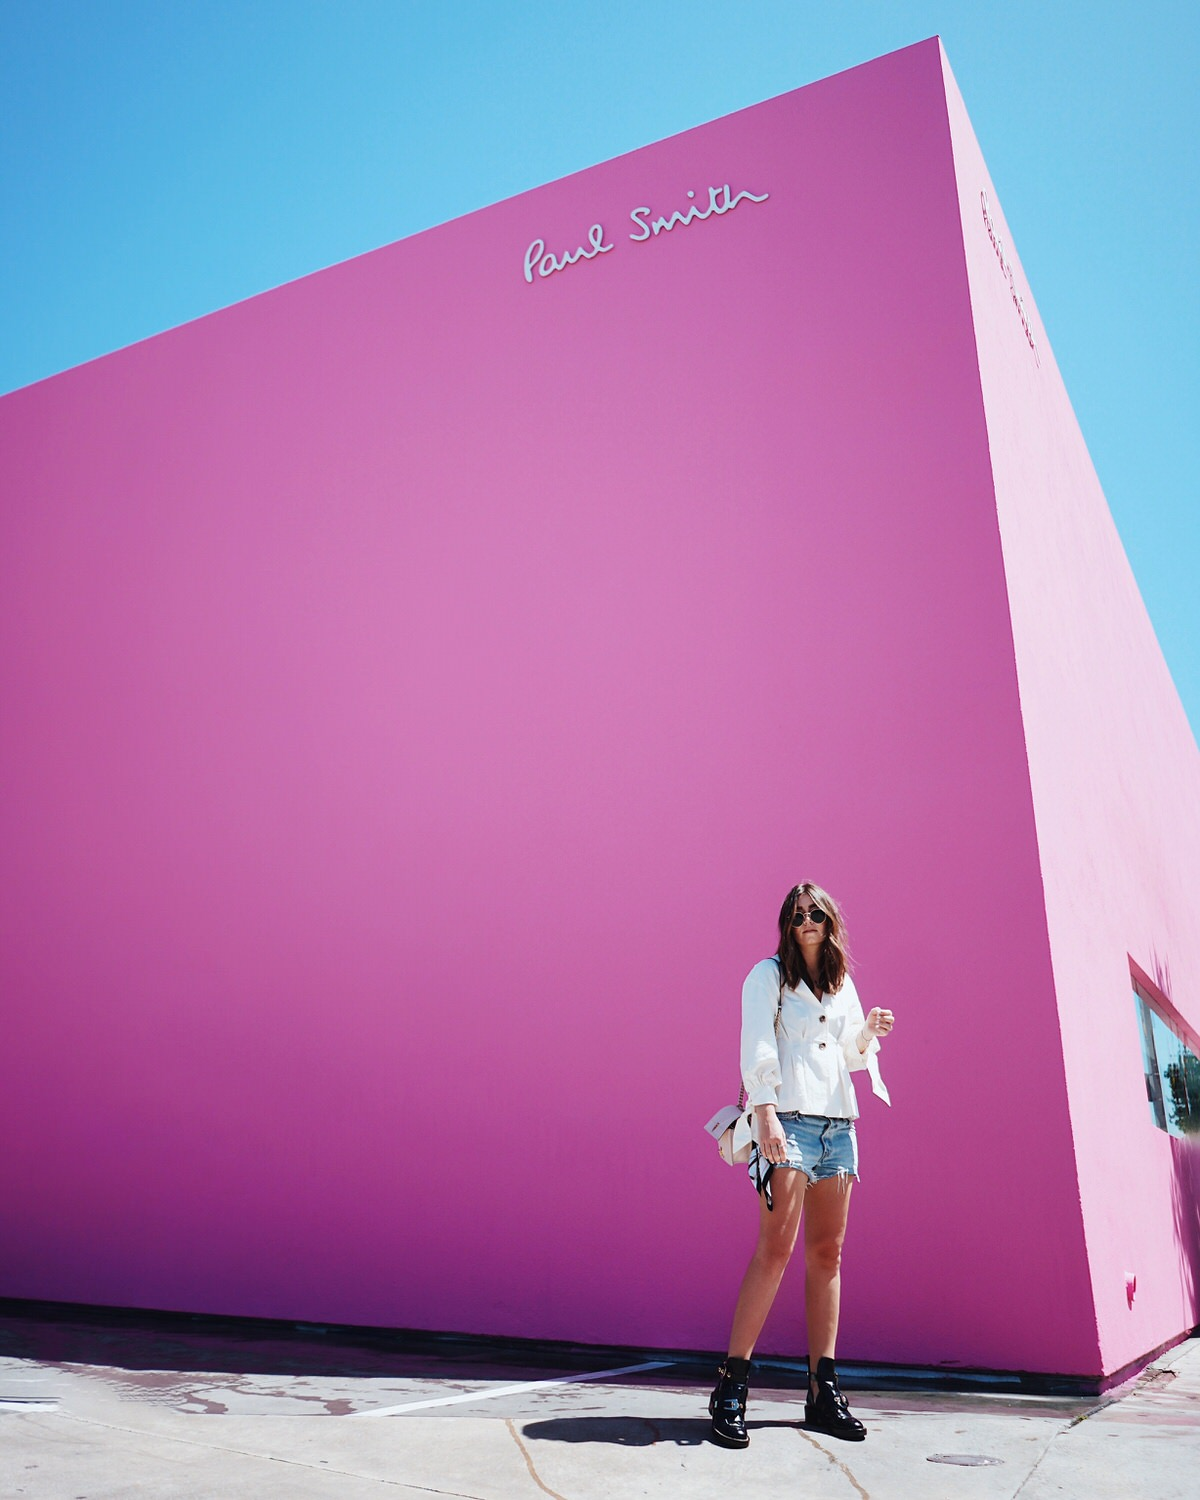 Road Trip, Los Angeles, California, Kalifornien, LA, Paul Smith, Paul Smith Wall, Melrose Ave., Graffiti Wall